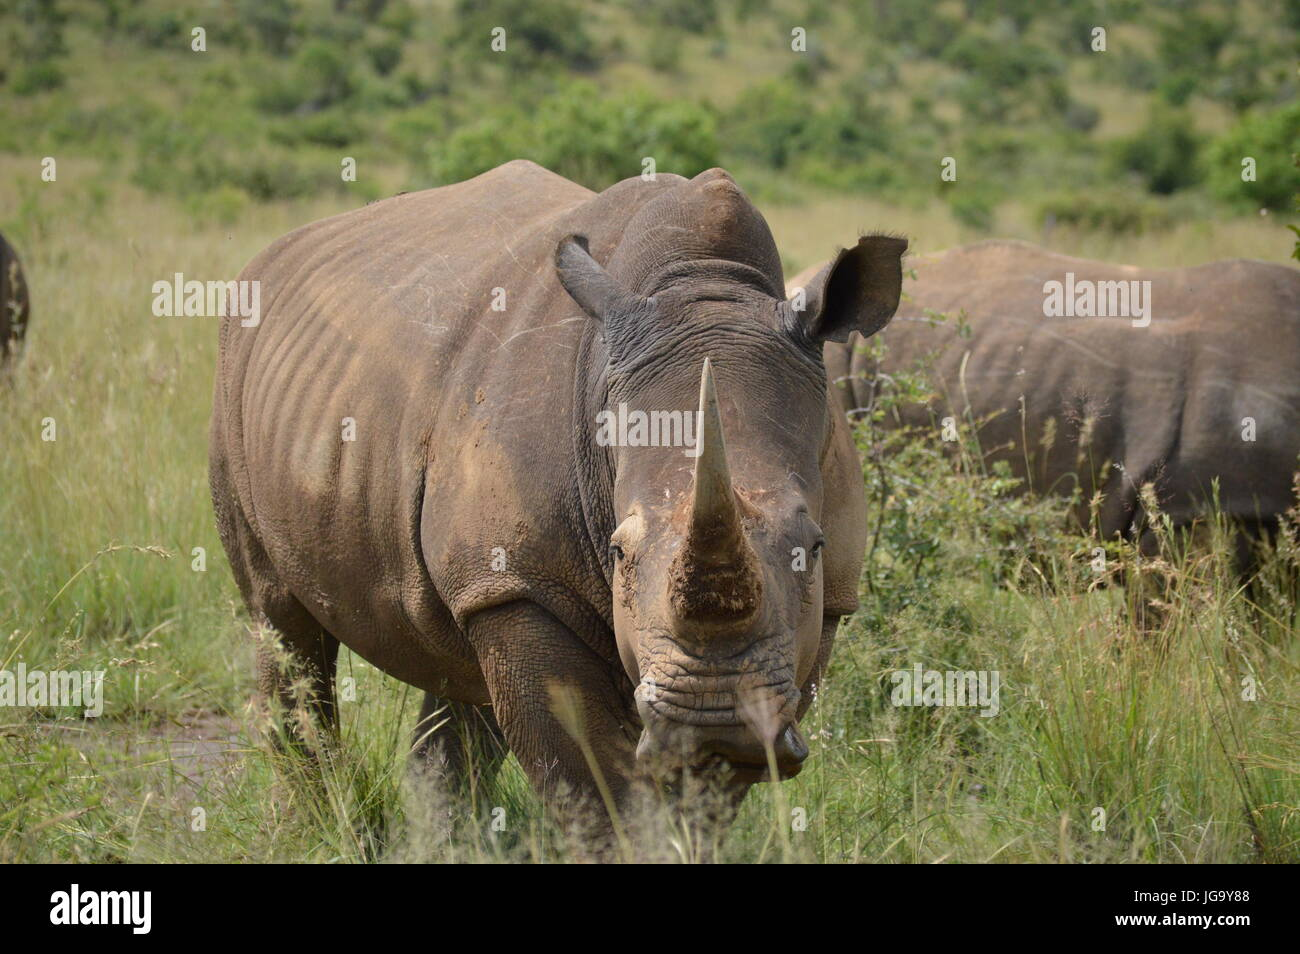 White Rhinoceros in Pilansberg National Park - Stock Image